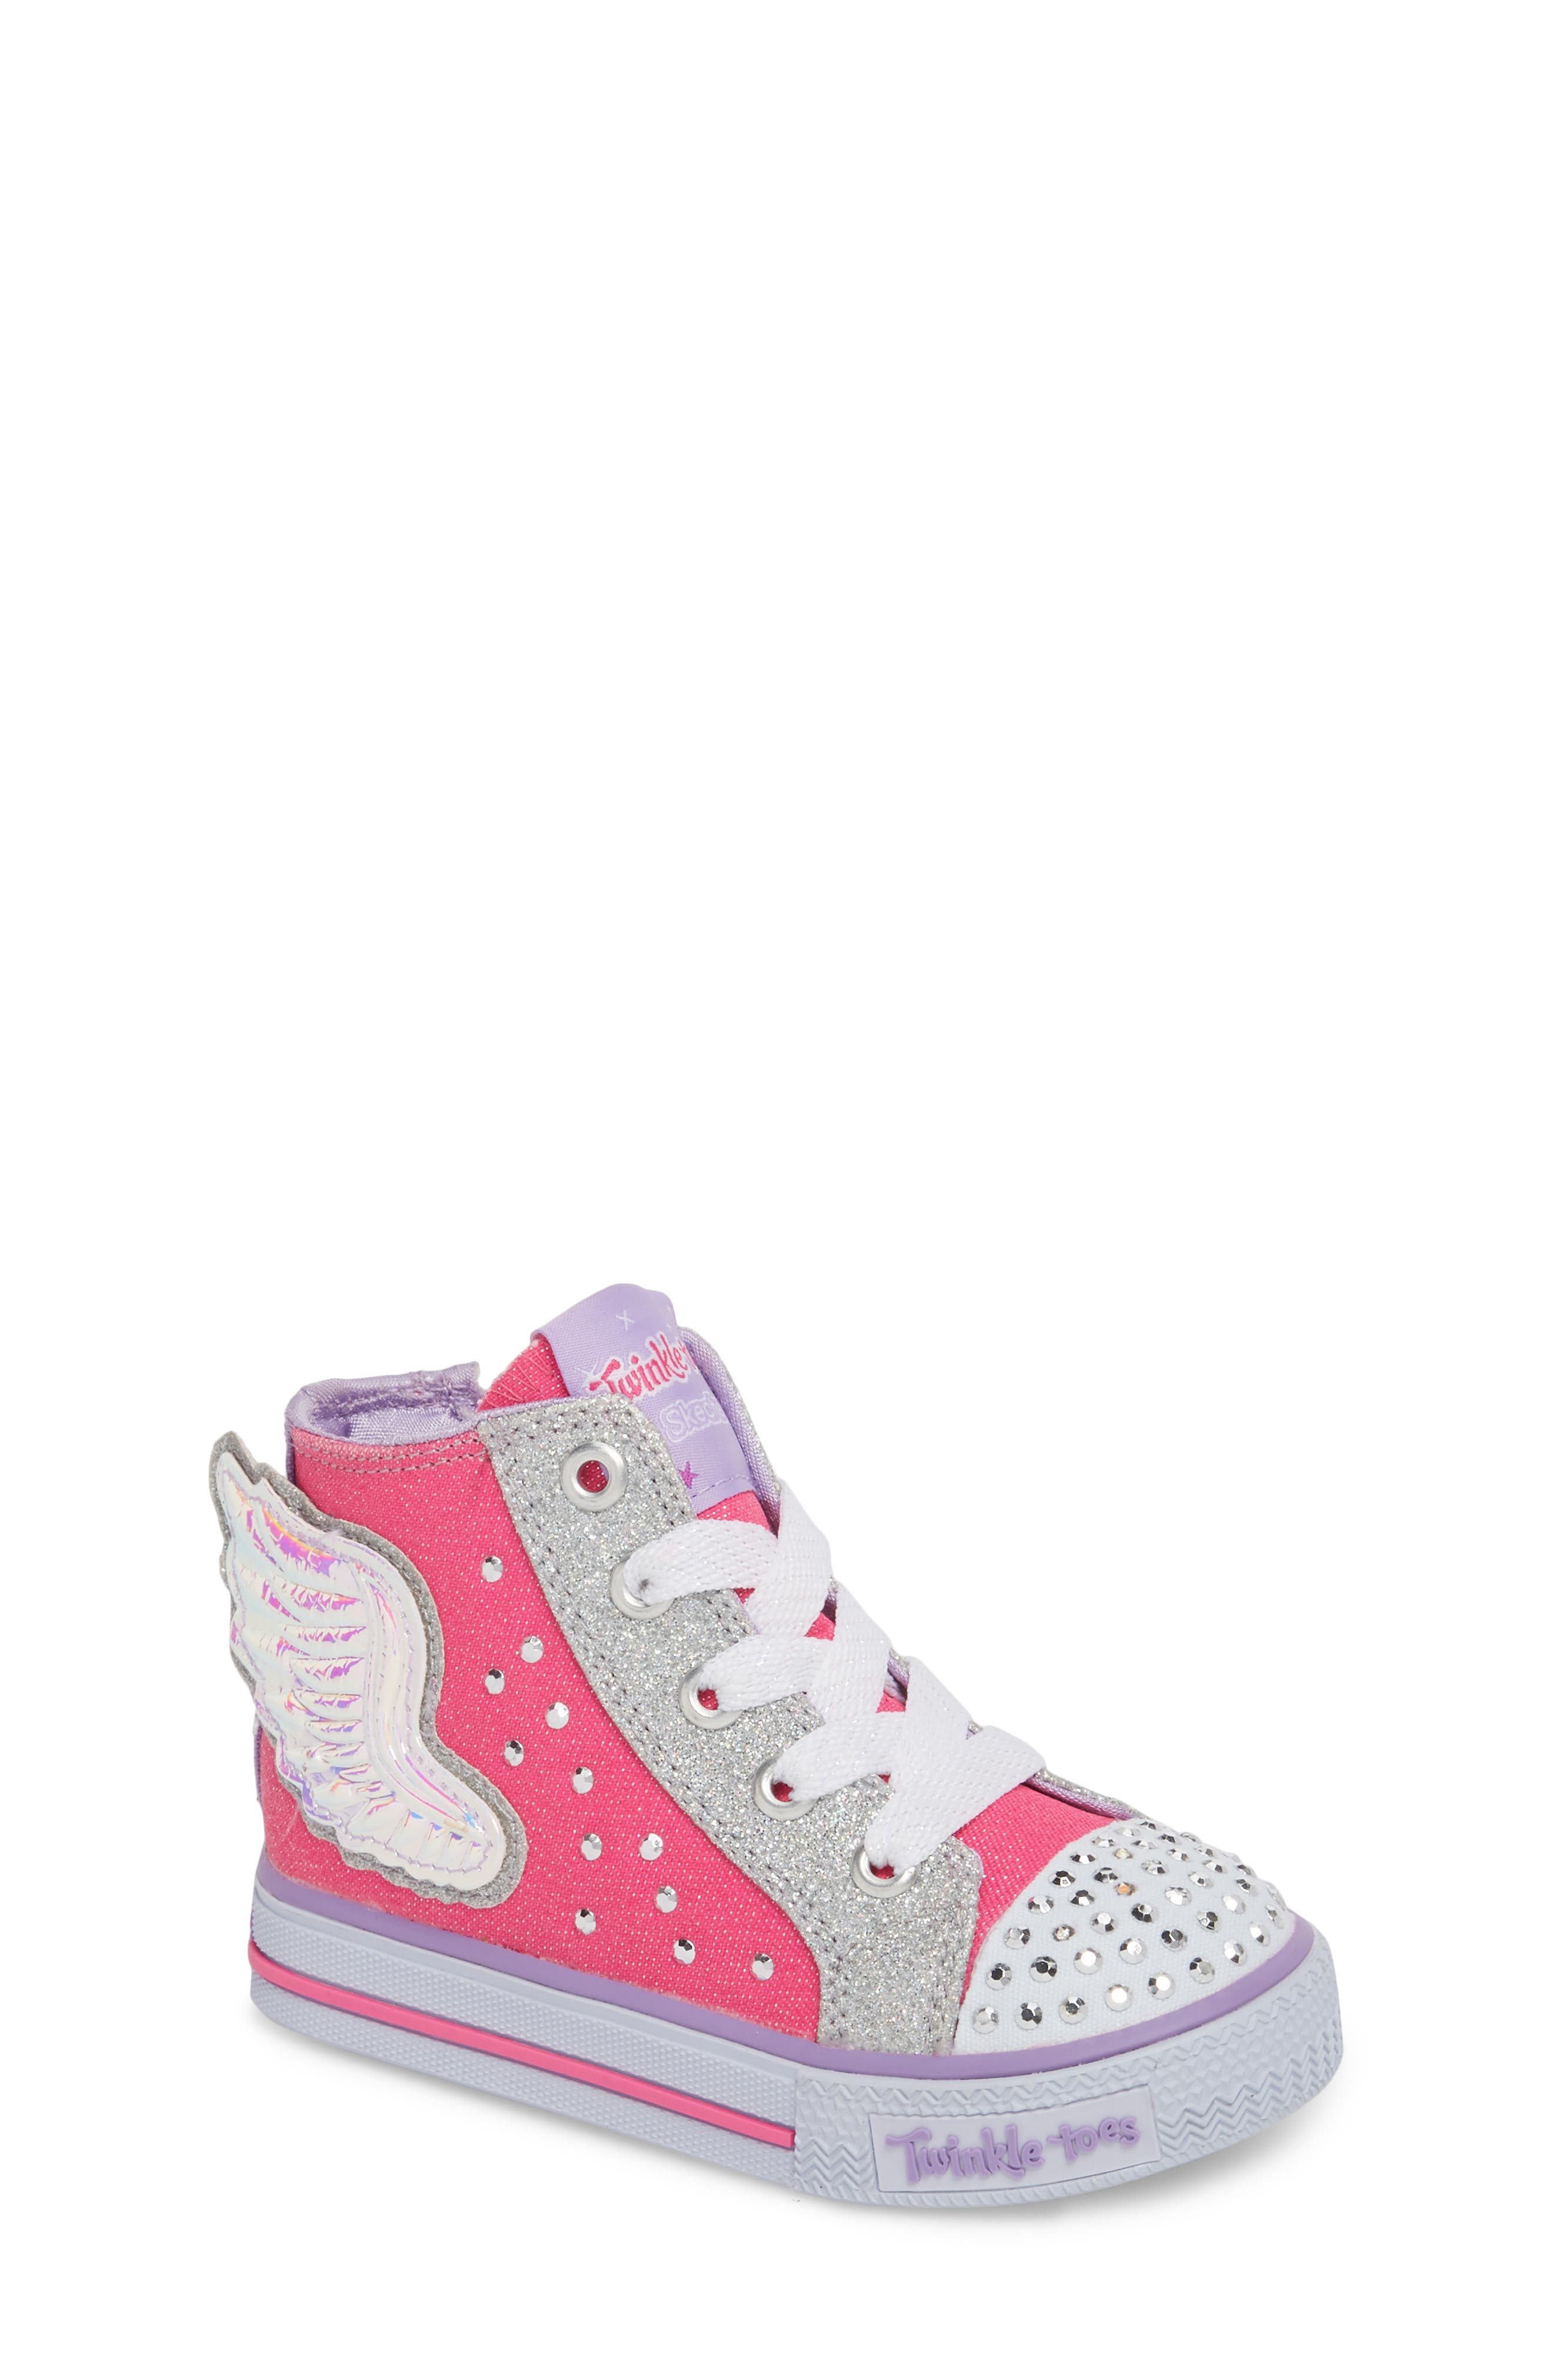 SKECHERS Twinkle Toes Shuffles Fooling Flutters Light-Up High Top Sneaker (Walker & Toddler)